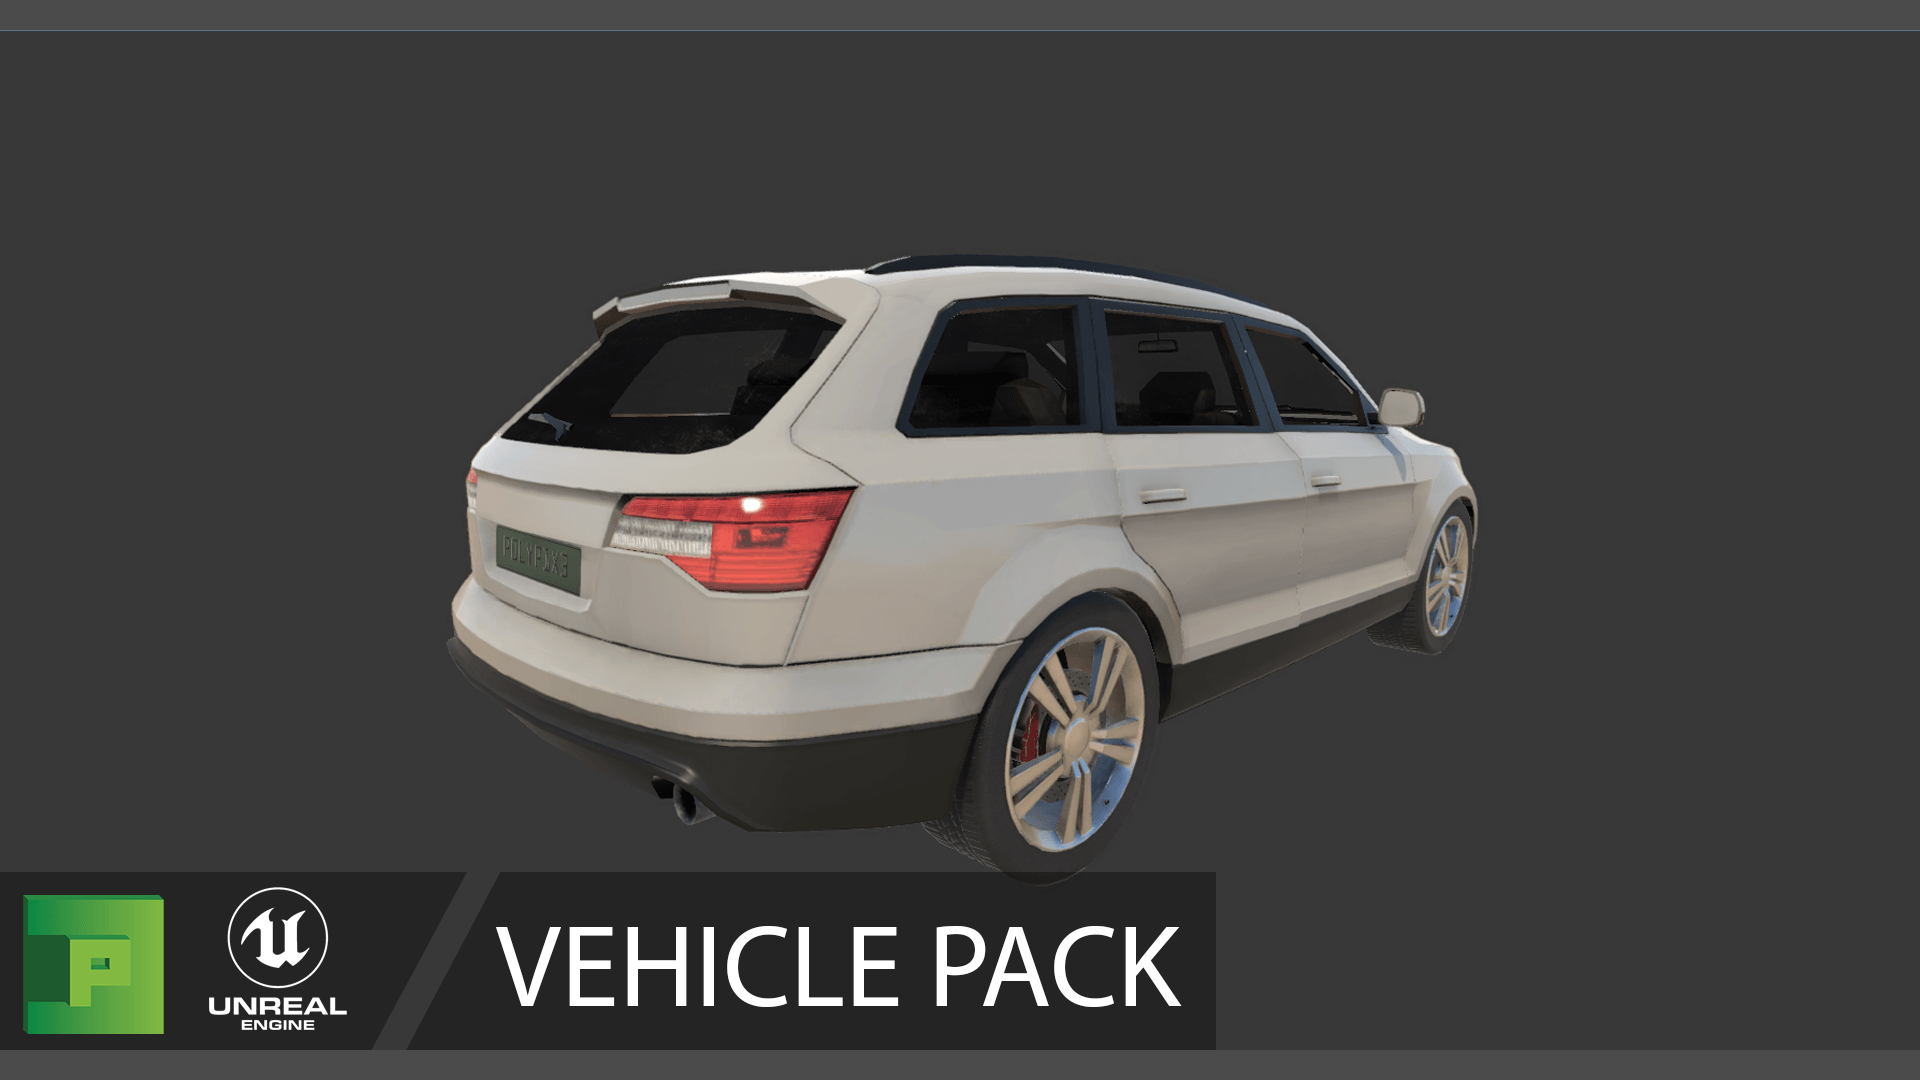 VehiclePack_02